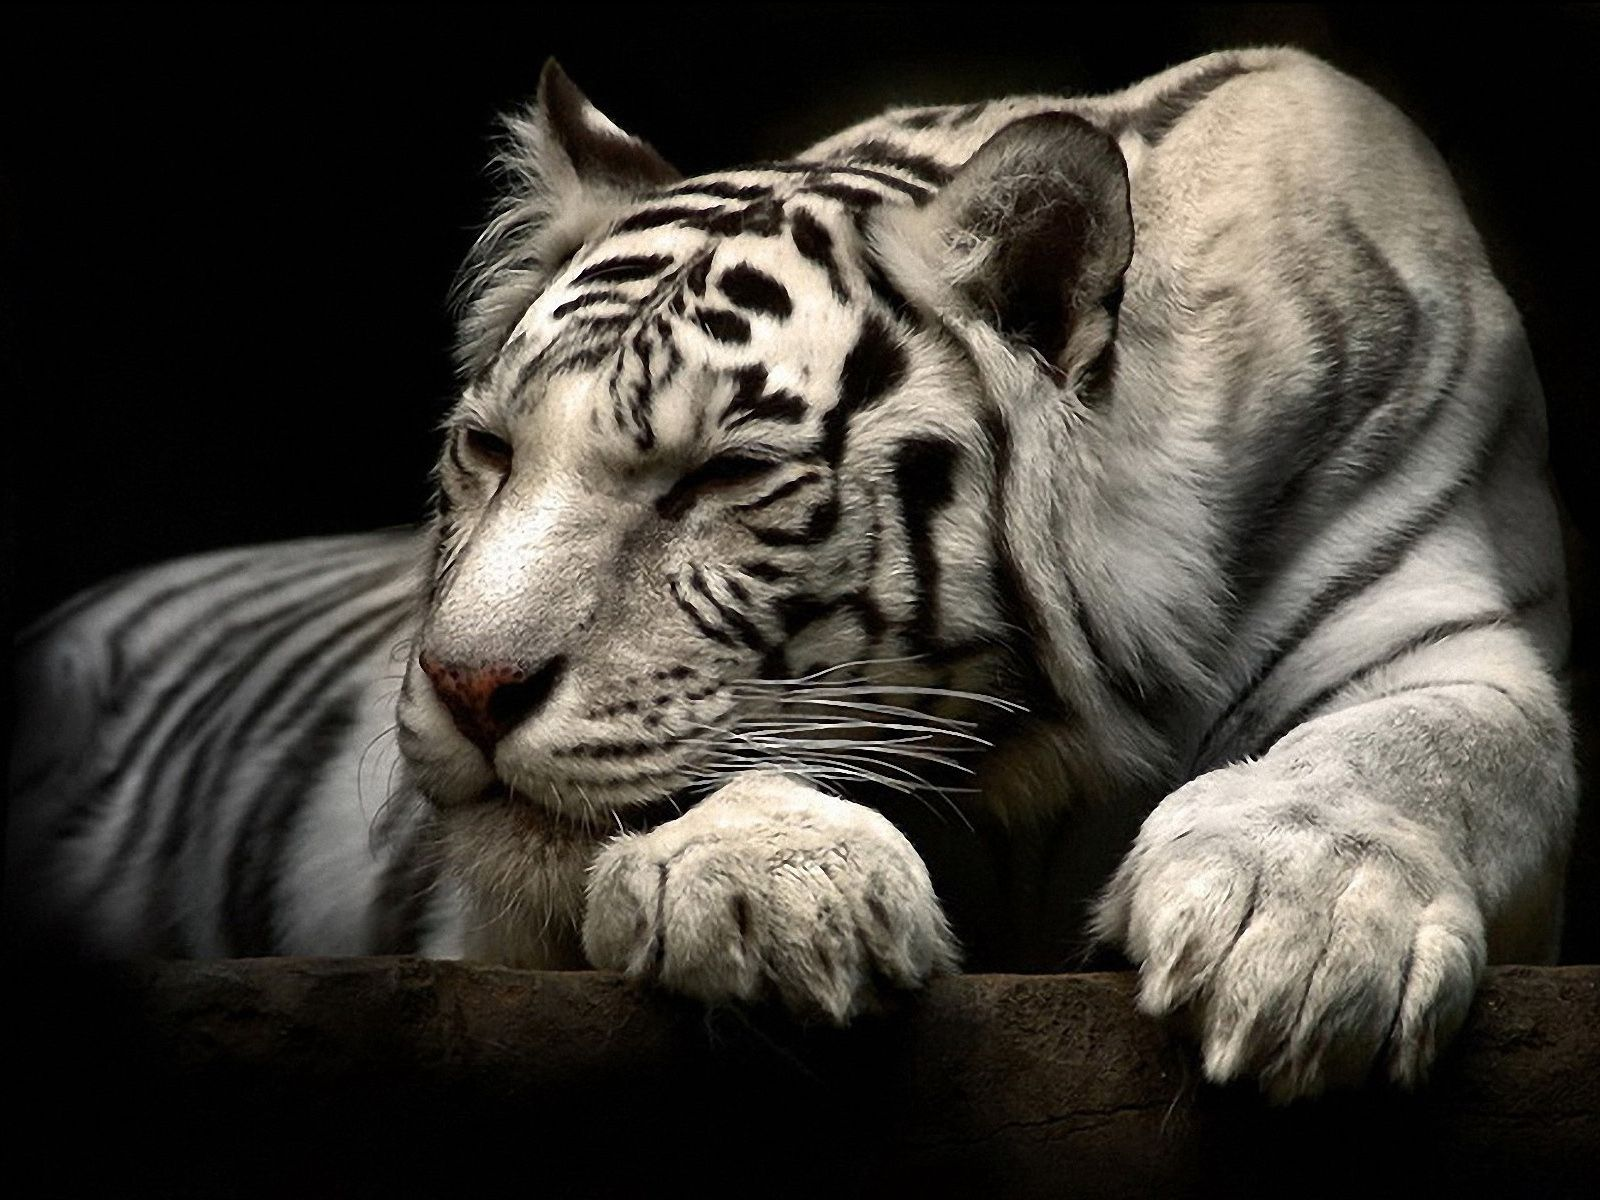 196 White Tiger Wallpapers White Tiger Backgrounds Animals Black And White Tiger Wallpaper White Tiger